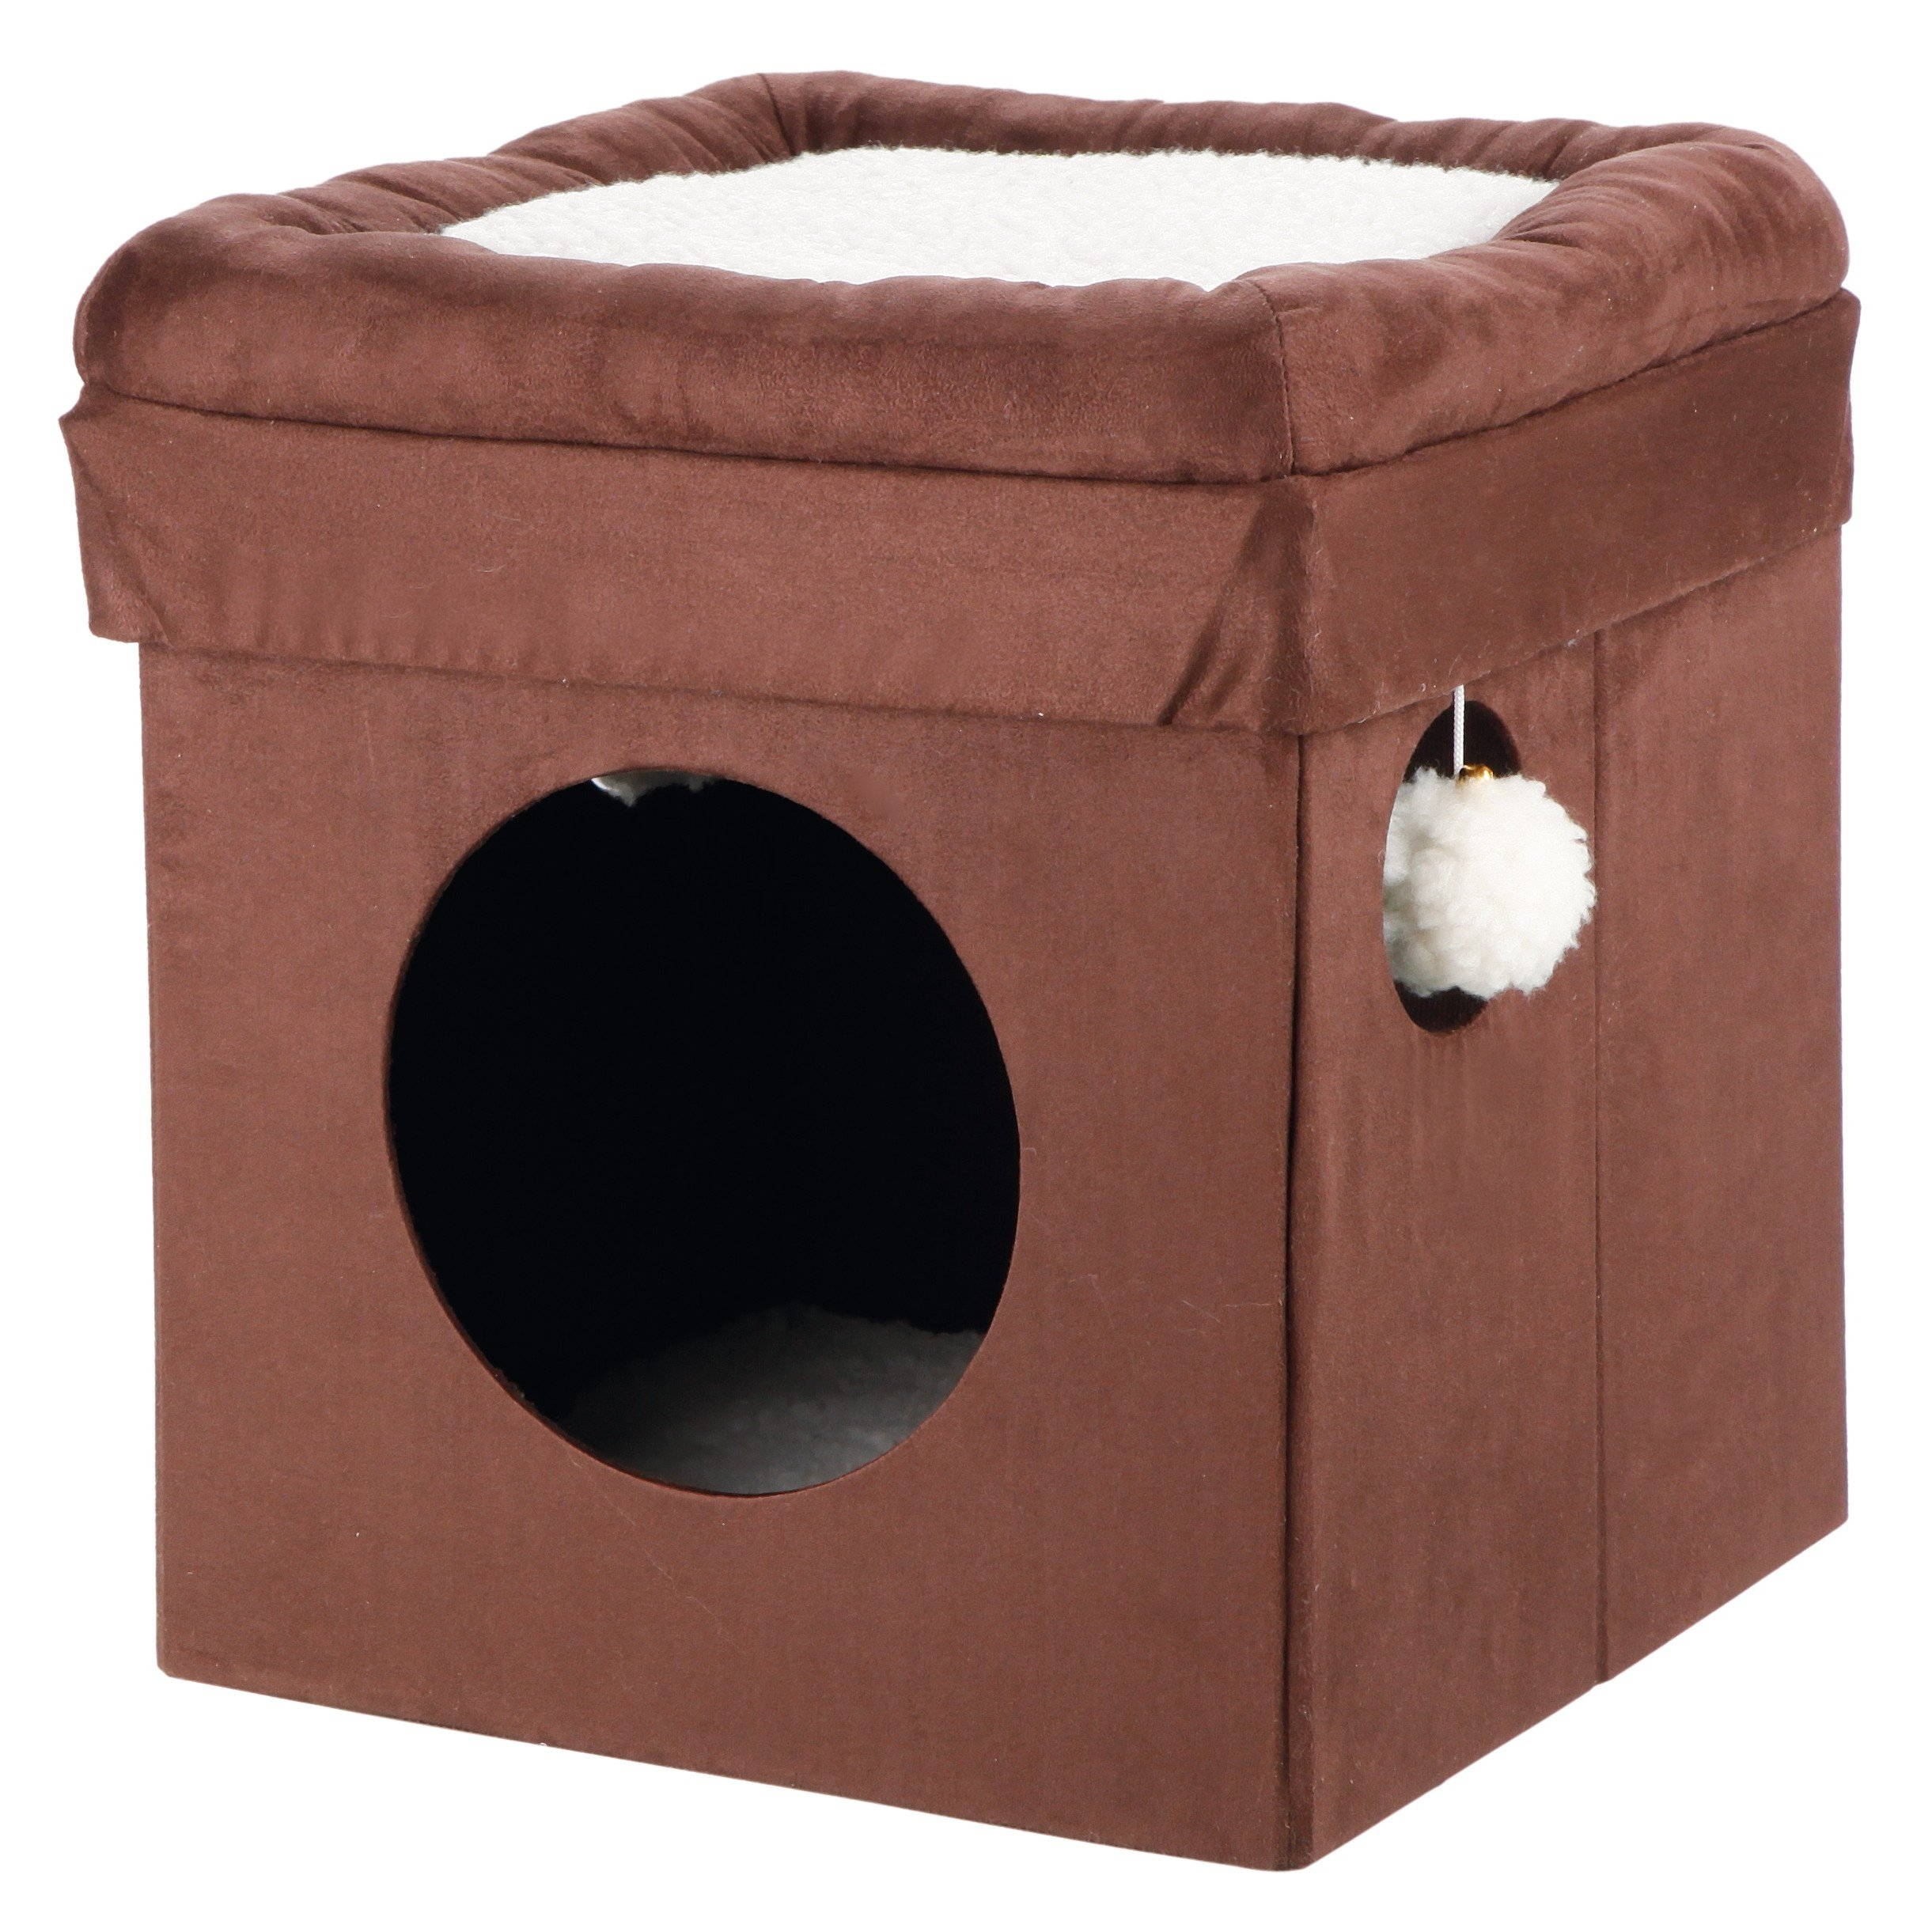 1 Piece Beige 16.5 Inches High Scratcher Fold Store Cat Condo, Brown Pet Hiding Cube Tree Bed Kitty Furniture Tunnel House, Collapsible Design Round Opening Dangling Pom-pom Toy Sisal Rope Polyester